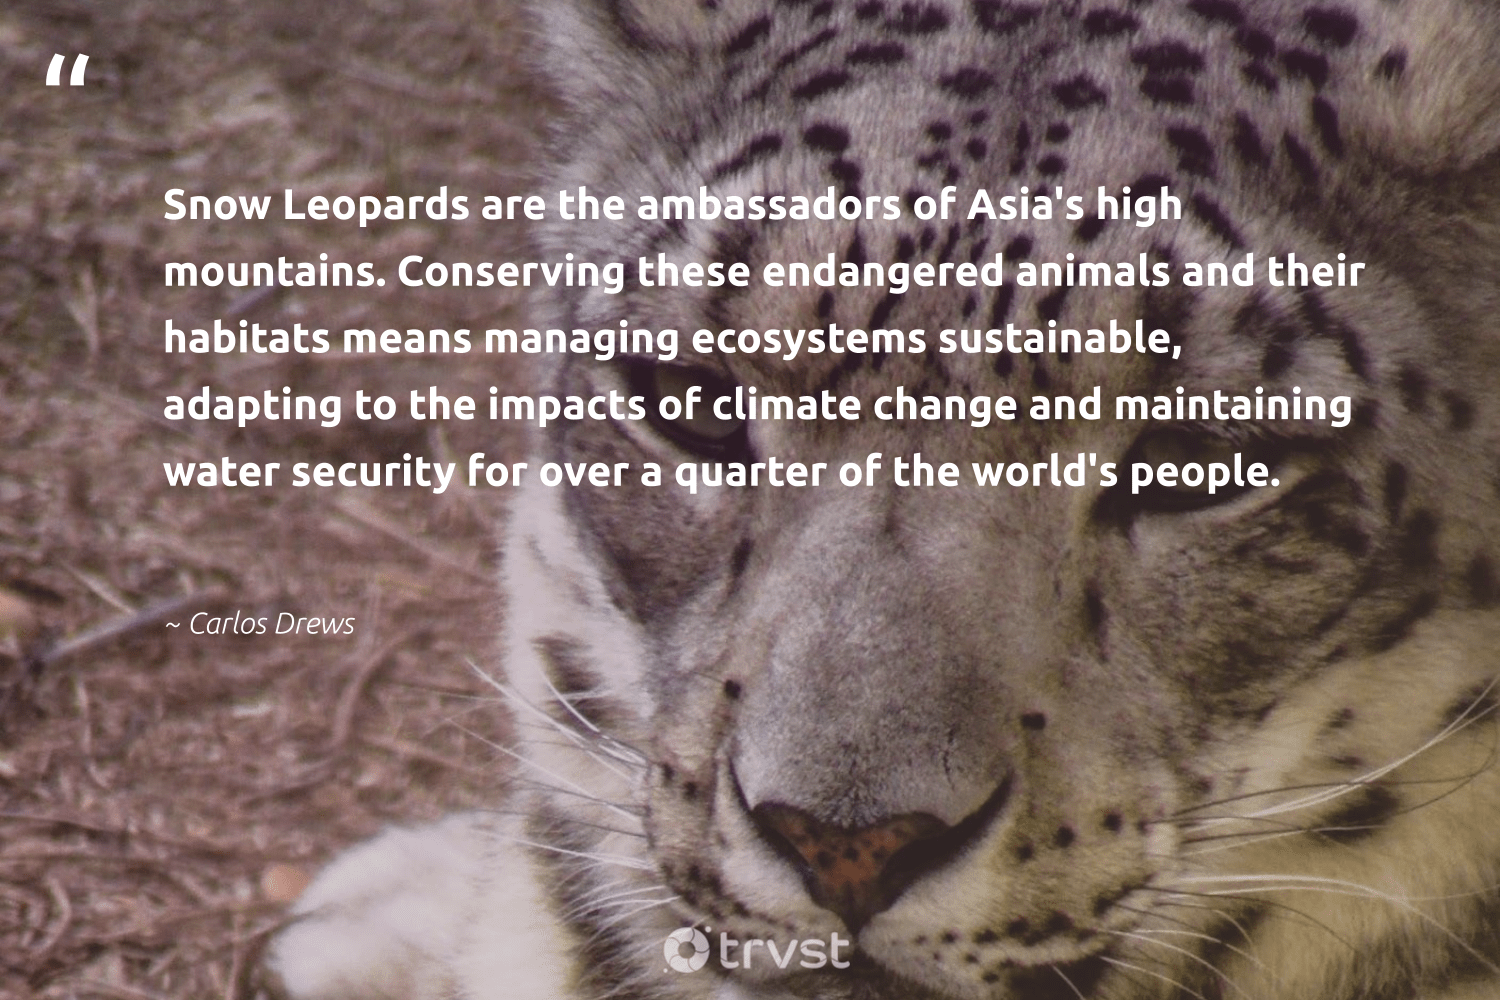 """""""Snow Leopards are the ambassadors of Asia's high mountains. Conserving these endangered animals and their habitats means managing ecosystems sustainable, adapting to the impacts of climate change and maintaining water security for over a quarter of the world's people.""""  - Carlos Drews #trvst #quotes #sustainable #climatechange #water #mountains #snow #animals #endangered #climate #impacts #leopards"""